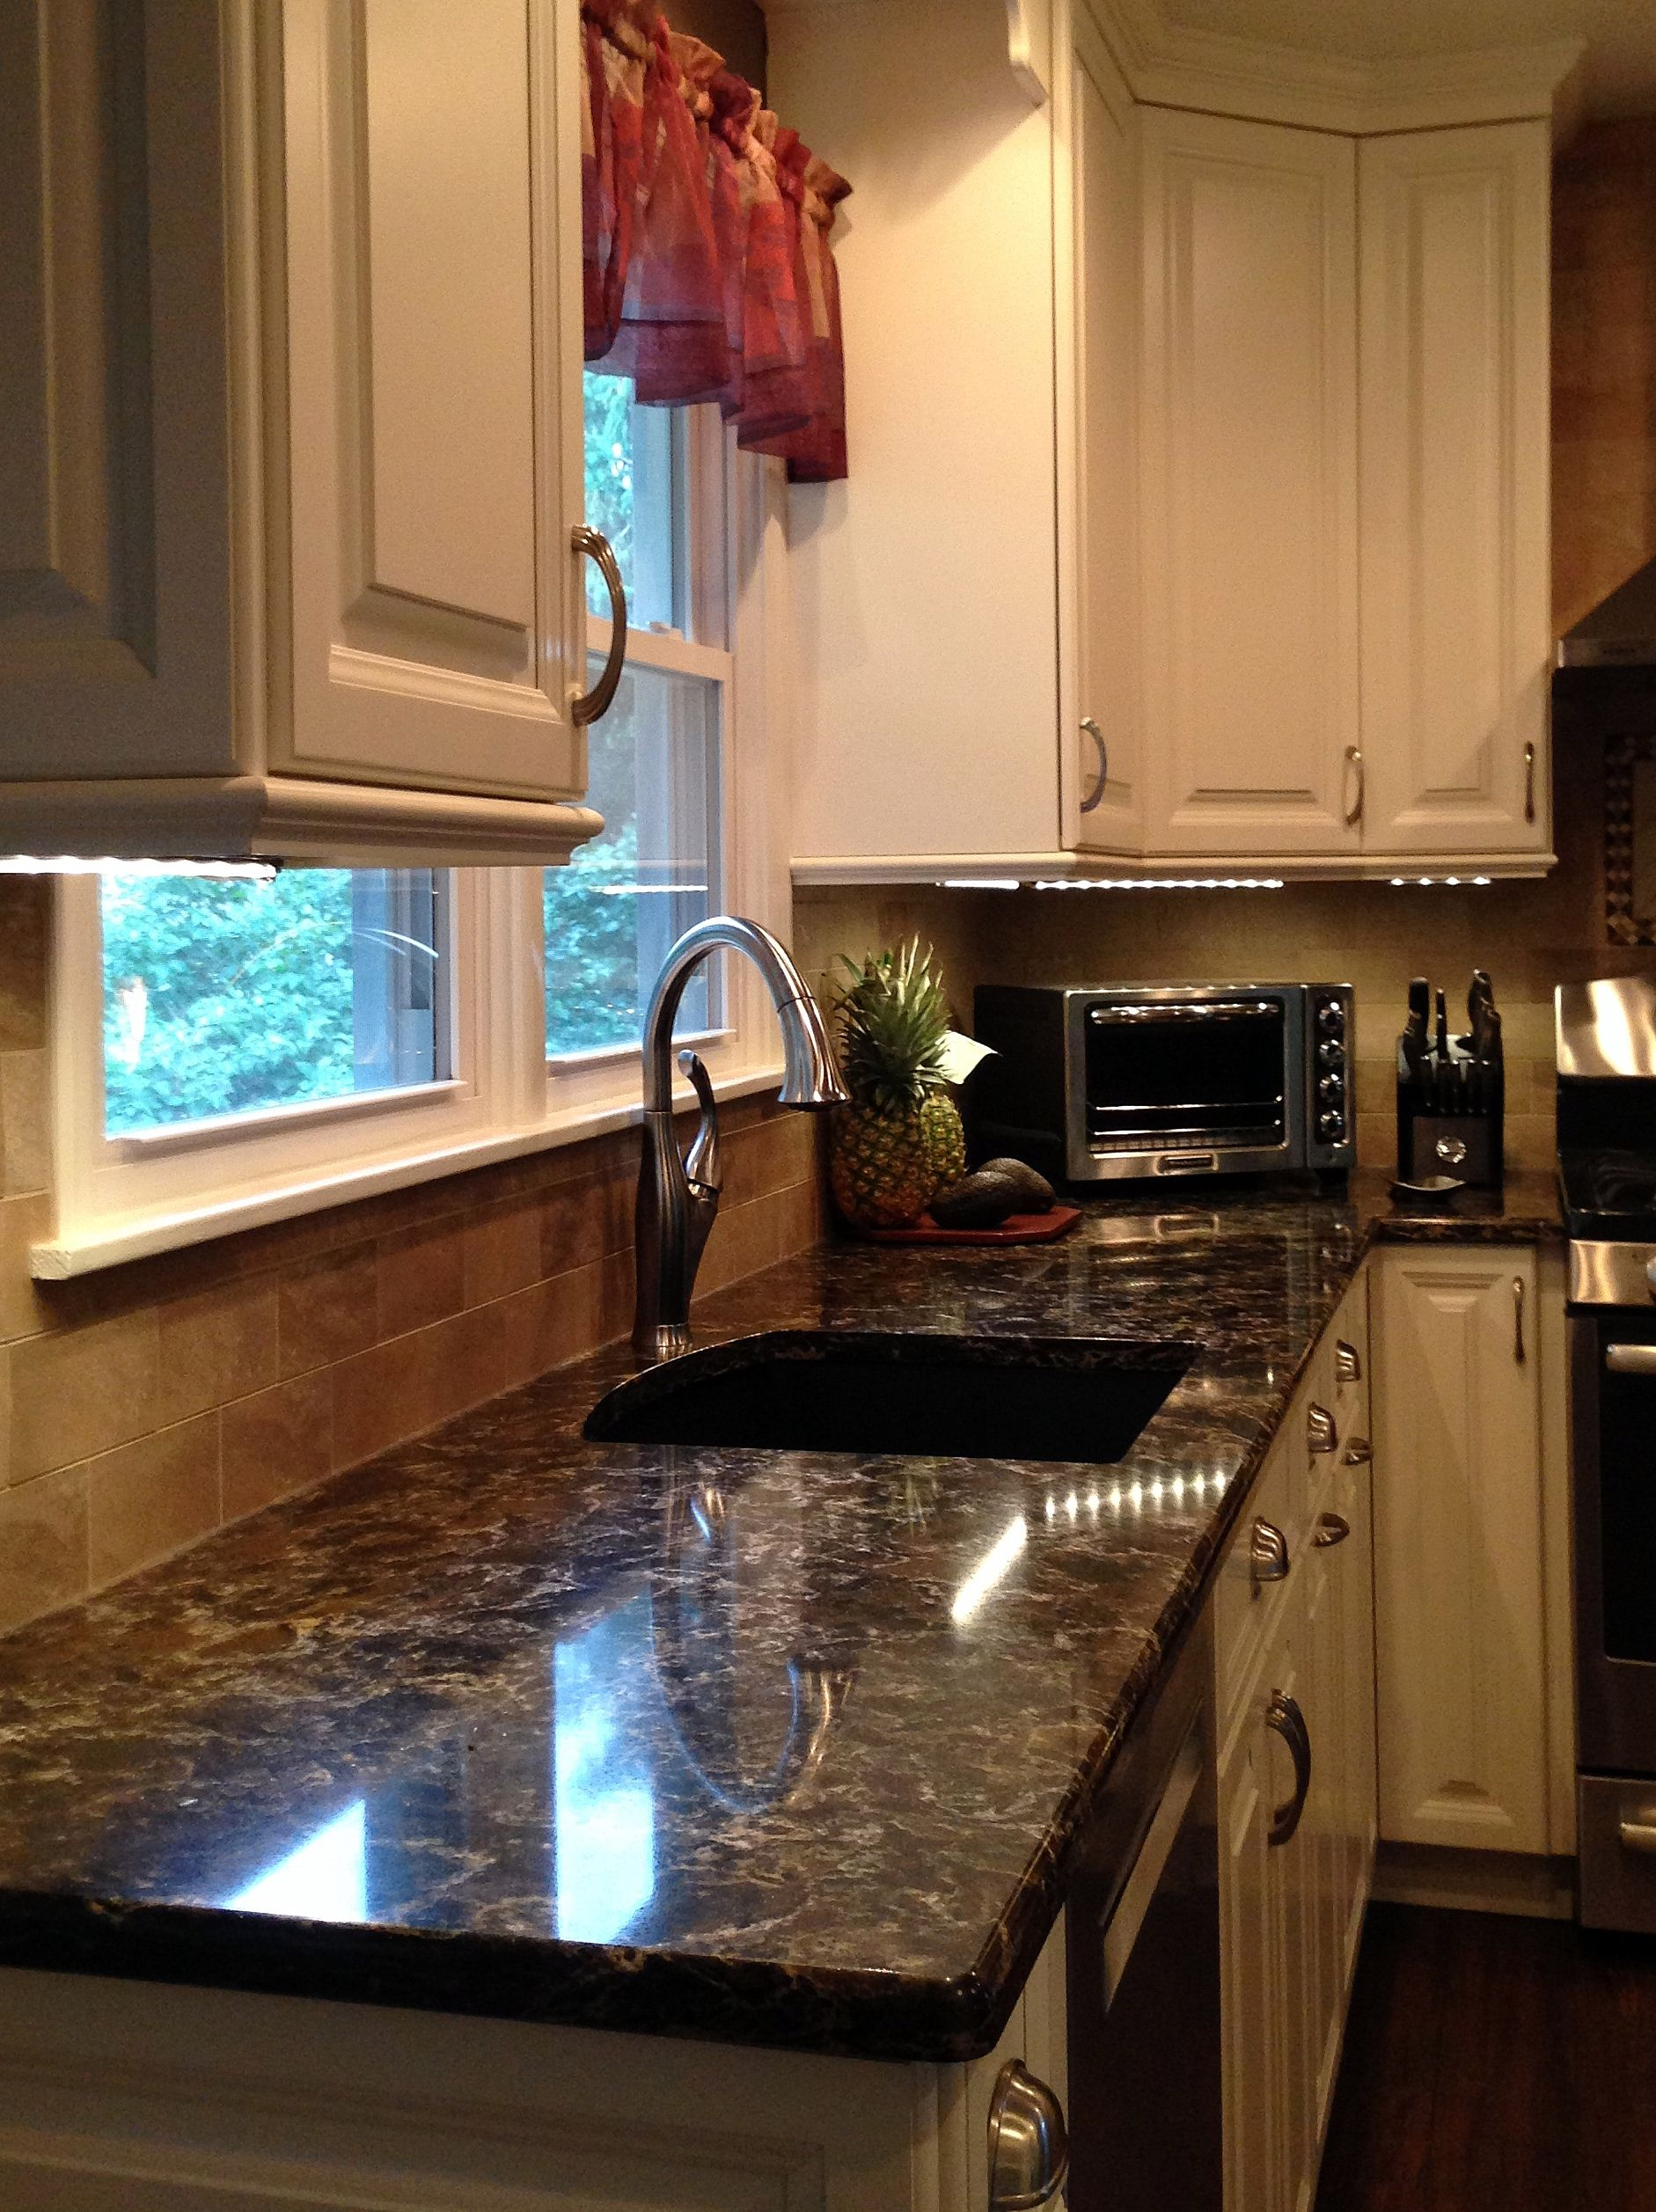 Beau White Millbrook Kitchen With Laneshaw Quartz Countertops (10 Of 10)